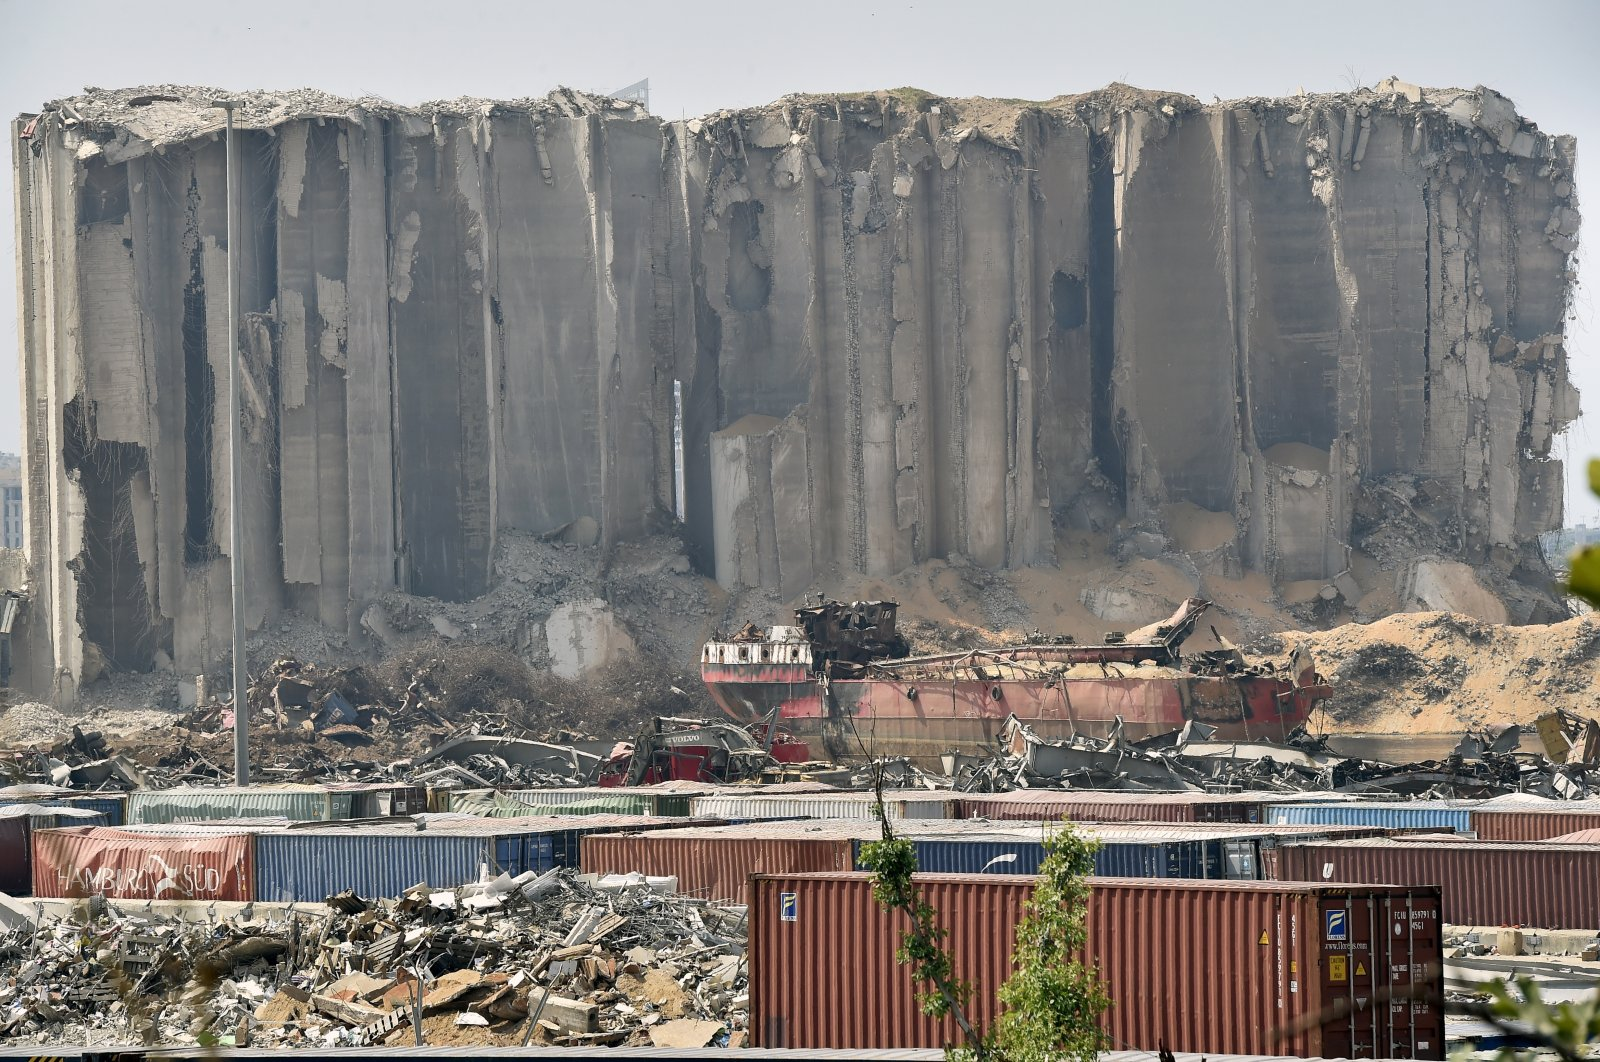 The damaged grain silos in the destroyed port area one month after a huge explosion, Beirut, Sept. 6, 2020. (EPA Photo)